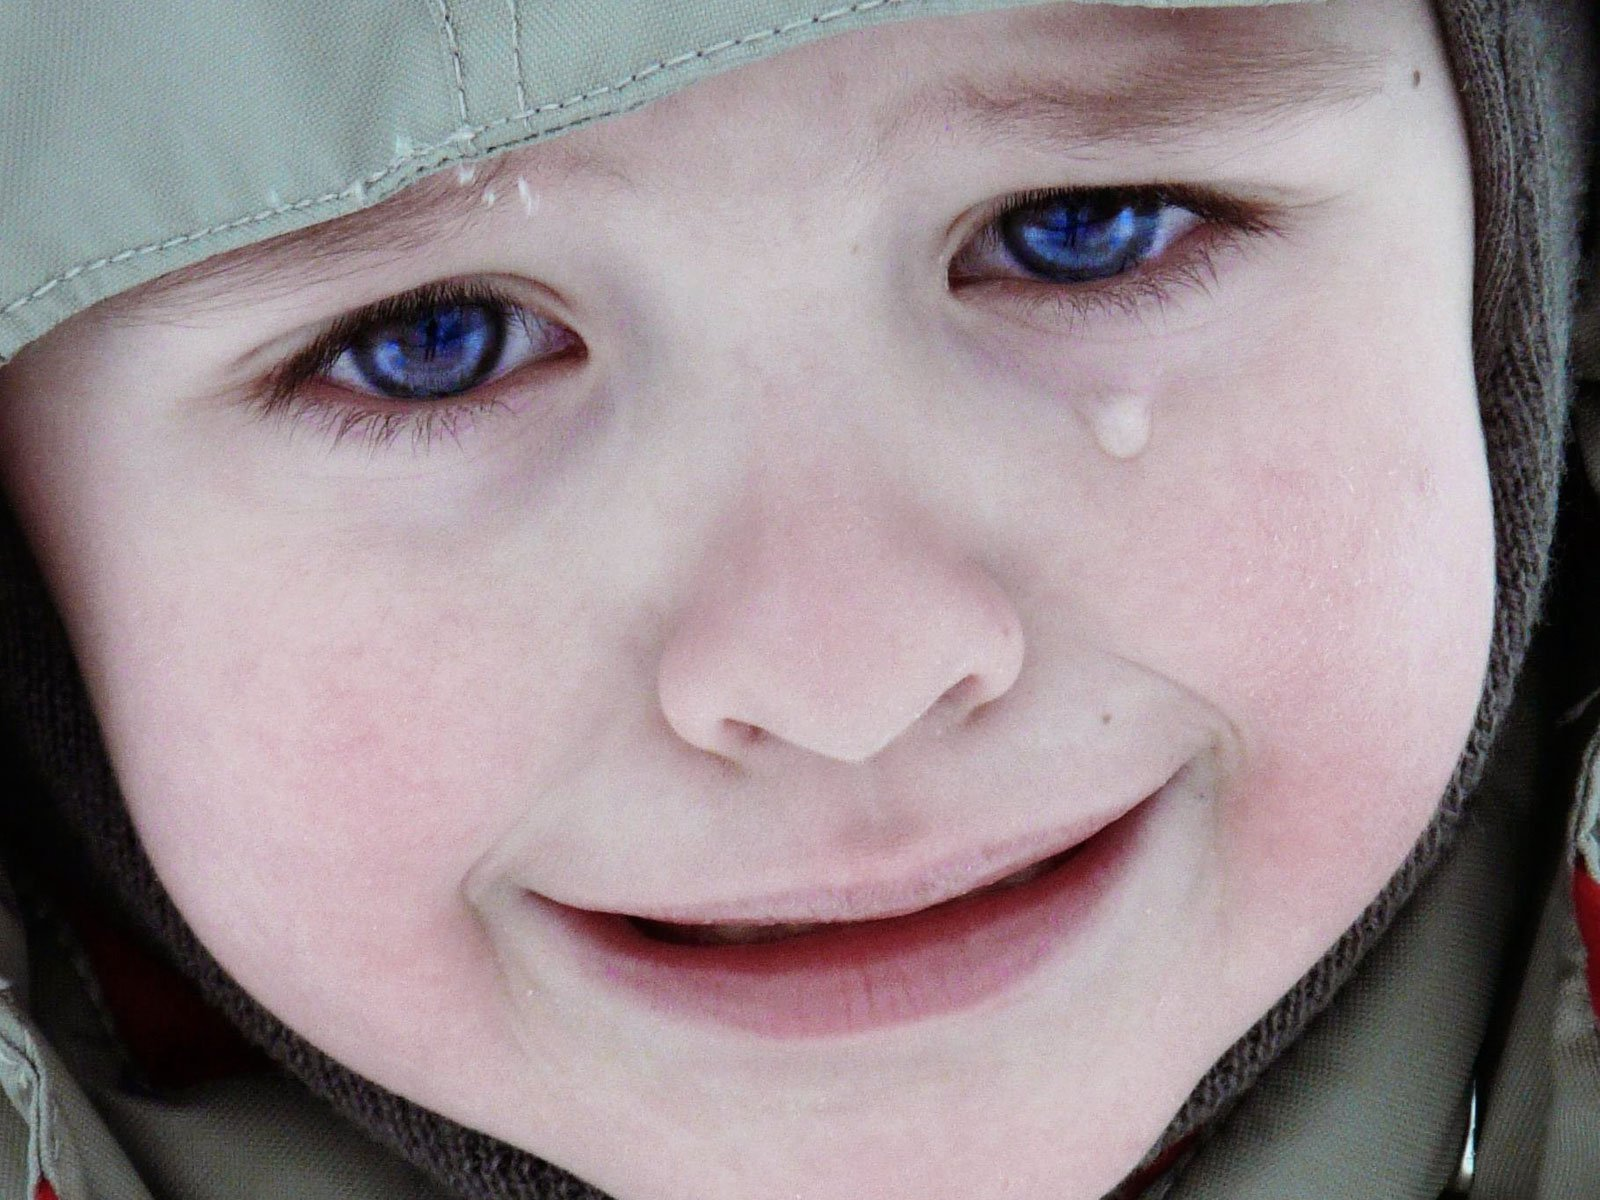 sad baby face while crying wallpaper 1600x1200